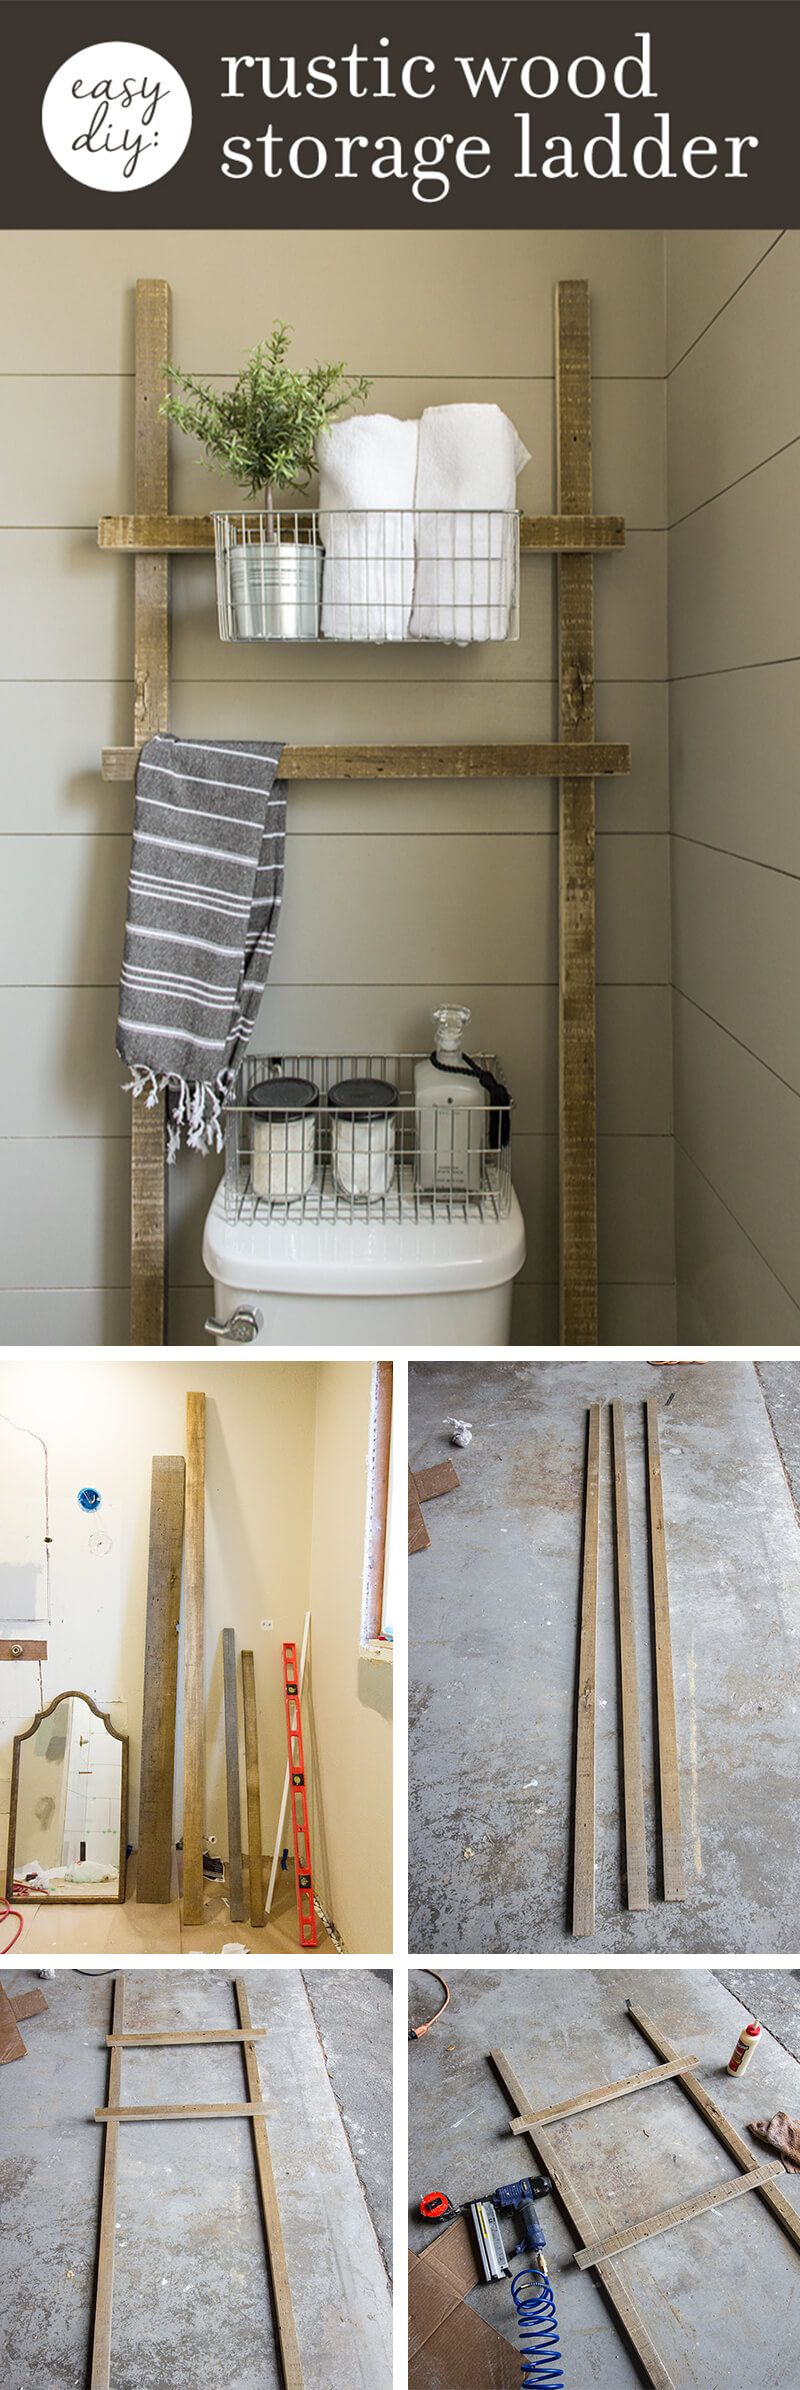 26 Cheap And Easy DIY Bathroom Ideas Anyone Can Do